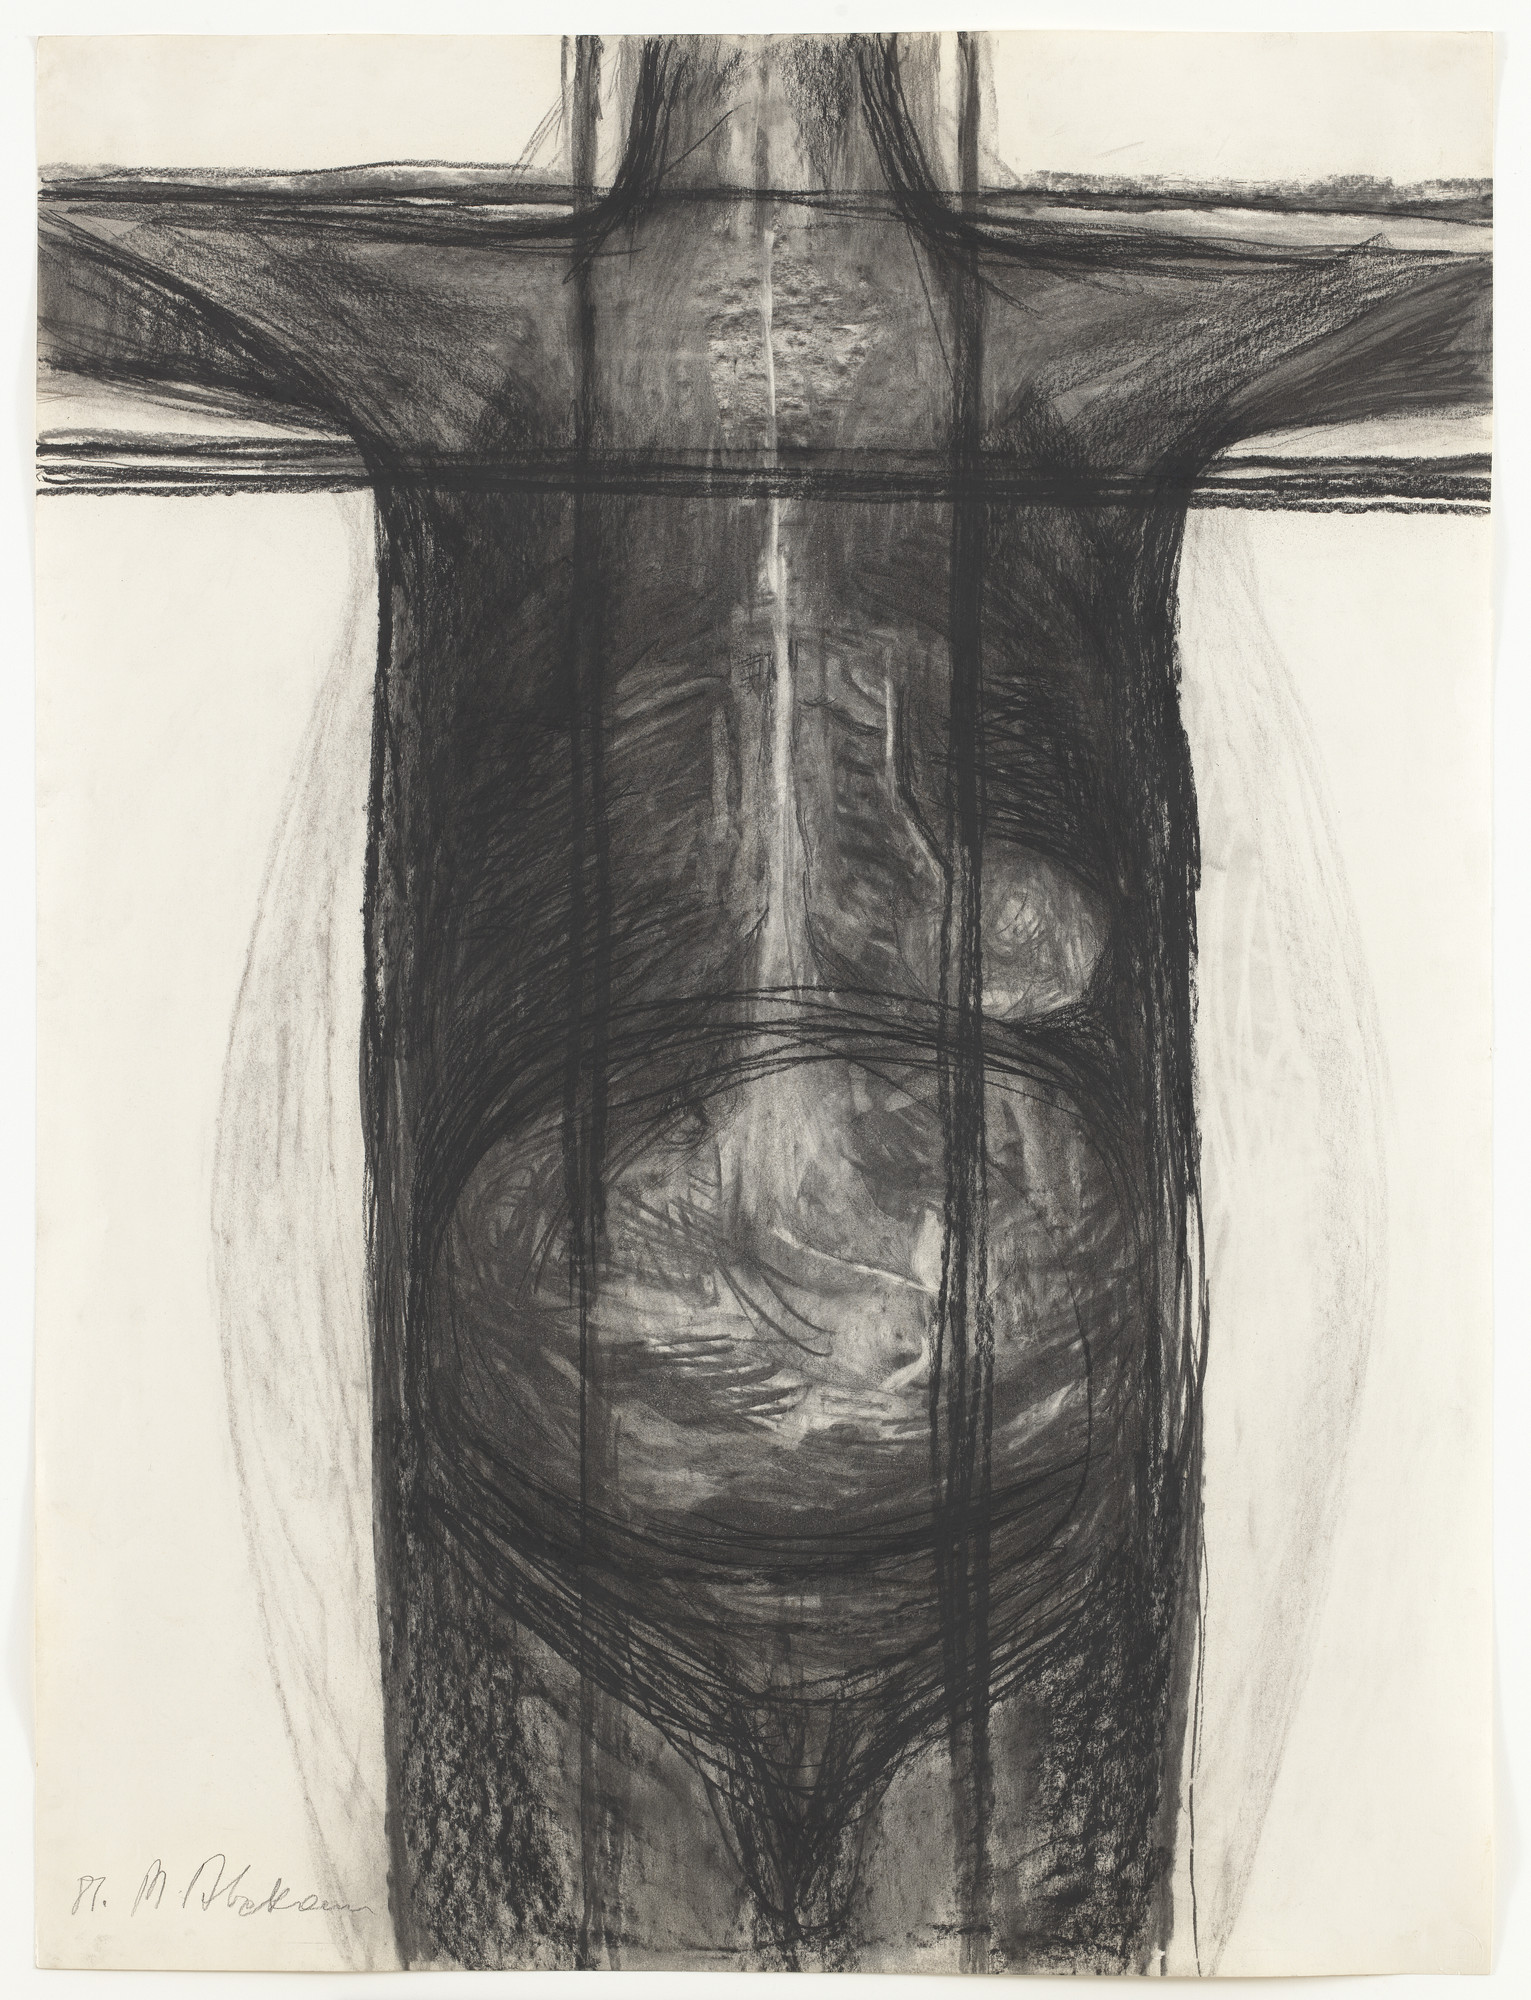 Magdalena Abakanowicz. Body 81F. 1981. Charcoal on paper, 39 3⁄8 × 29 5/8″ (100 × 75.3 cm). Gift of Edward R. Broida and Richard E. Salomon. © 2016 Magdalena Abakanowicz. Photo: Thomas Griesel